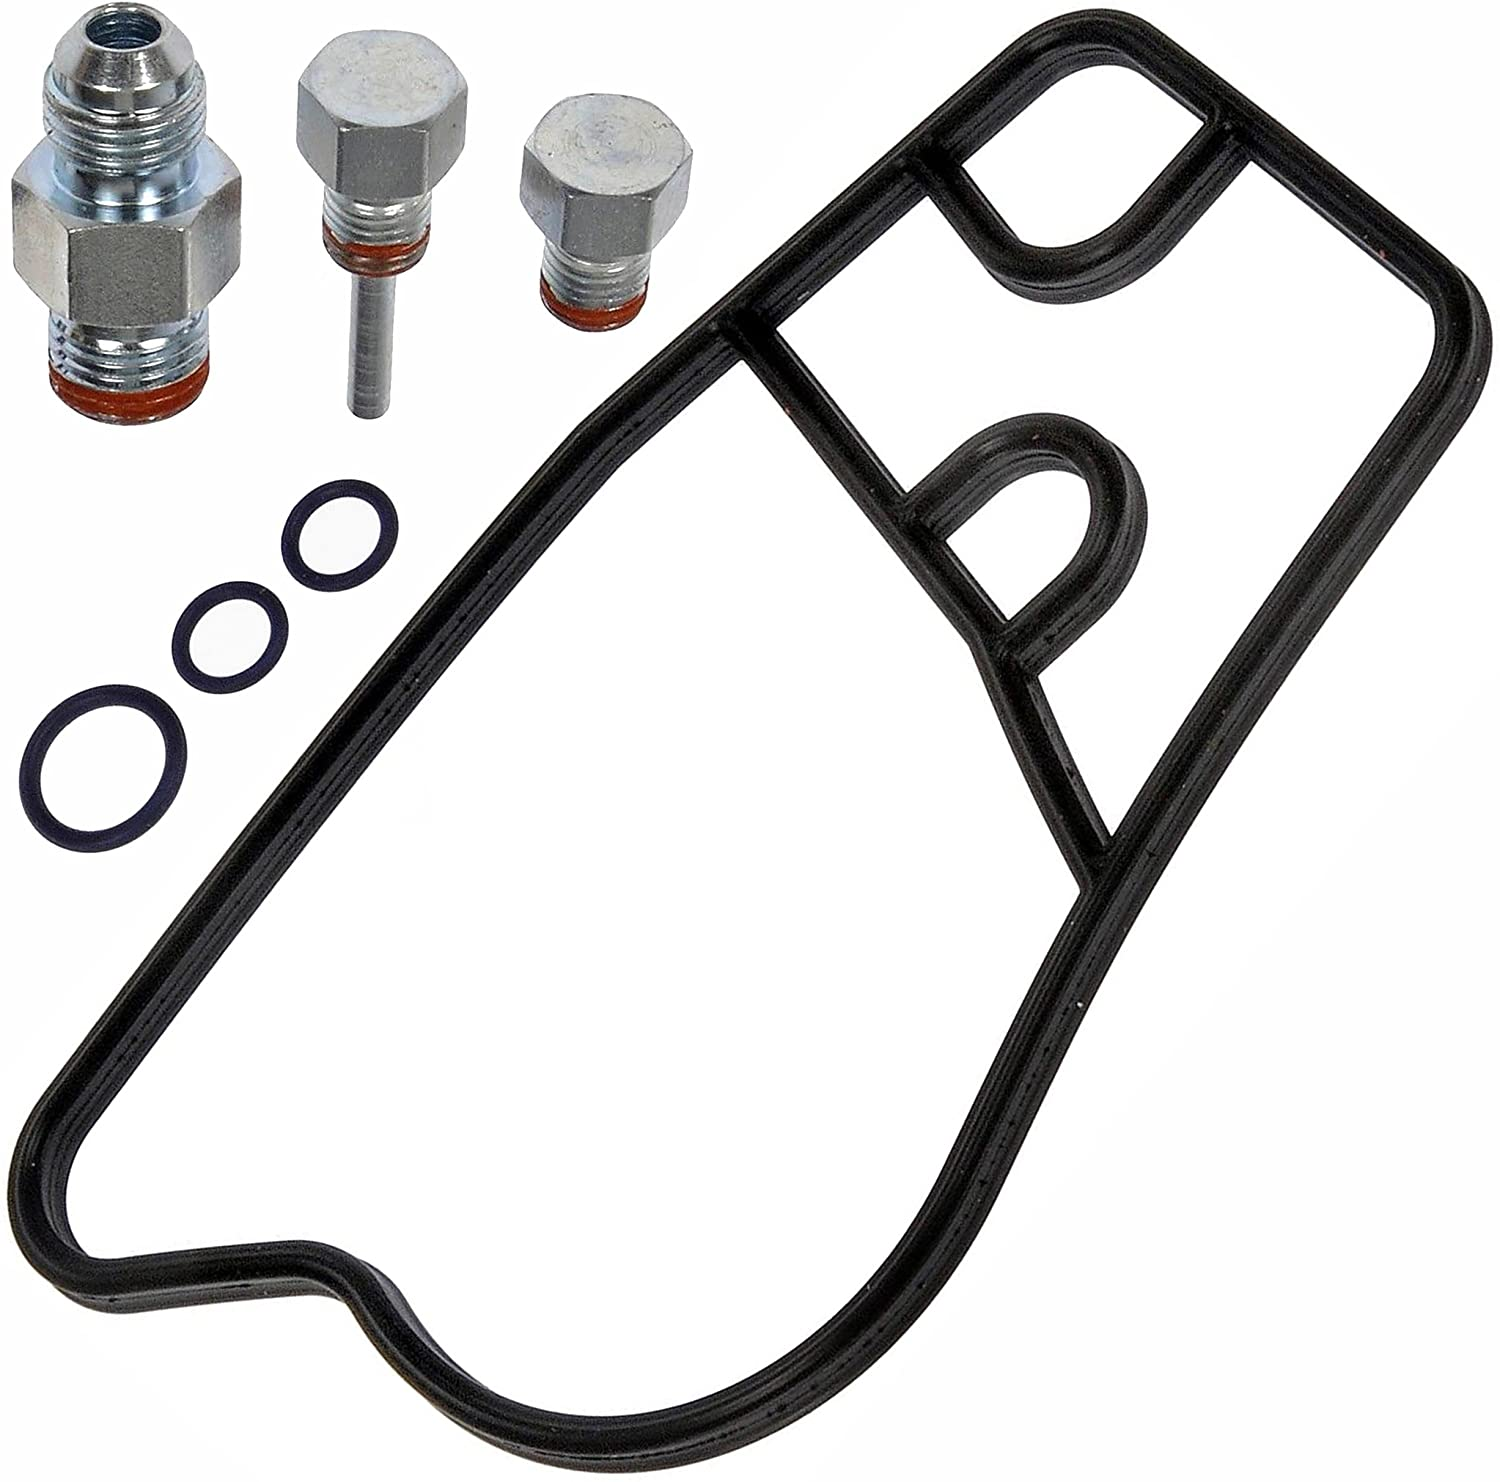 APDTY 138692 High Pressure Oil Pump HPOP Seal Kit Fits 1994-2013 International Diesel DT466 Engine (Includes 3 Fittings, 1 Gasket, and 3 O-rings; Replaces 1825685C1, 1842906C92)